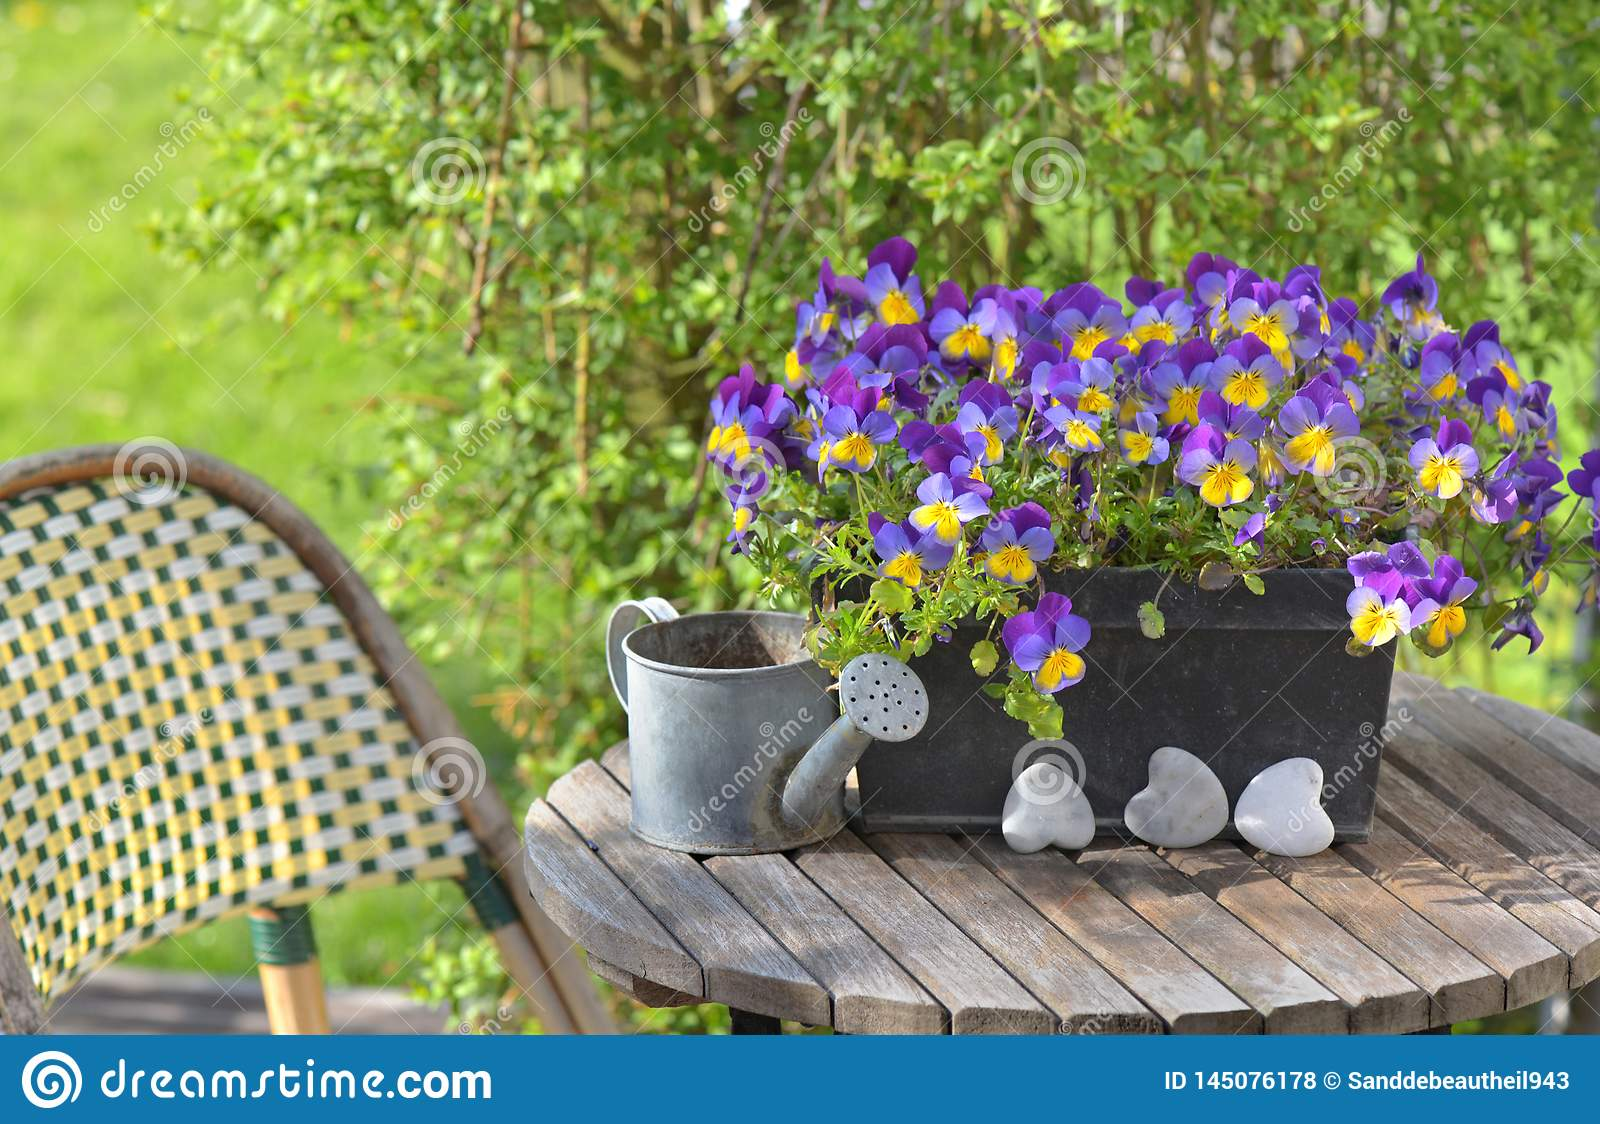 viola in a flowerpot on a garden table with a little watering can